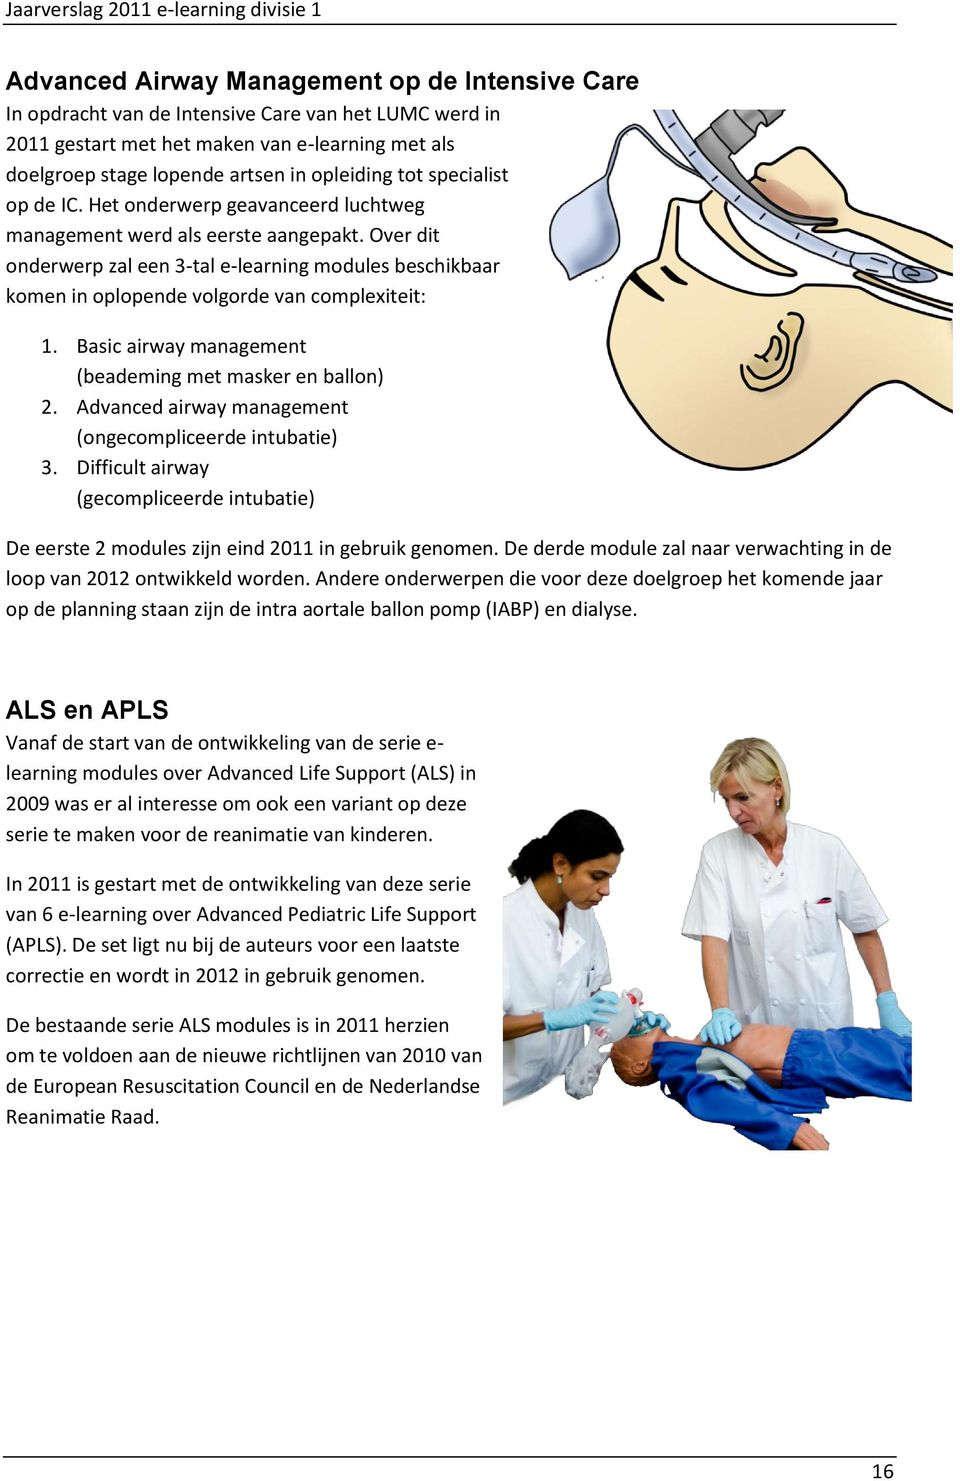 Over dit onderwerp zal een 3-tal e-learning modules beschikbaar komen in oplopende volgorde van complexiteit: 1. Basic airway management (beademing met masker en ballon) 2.